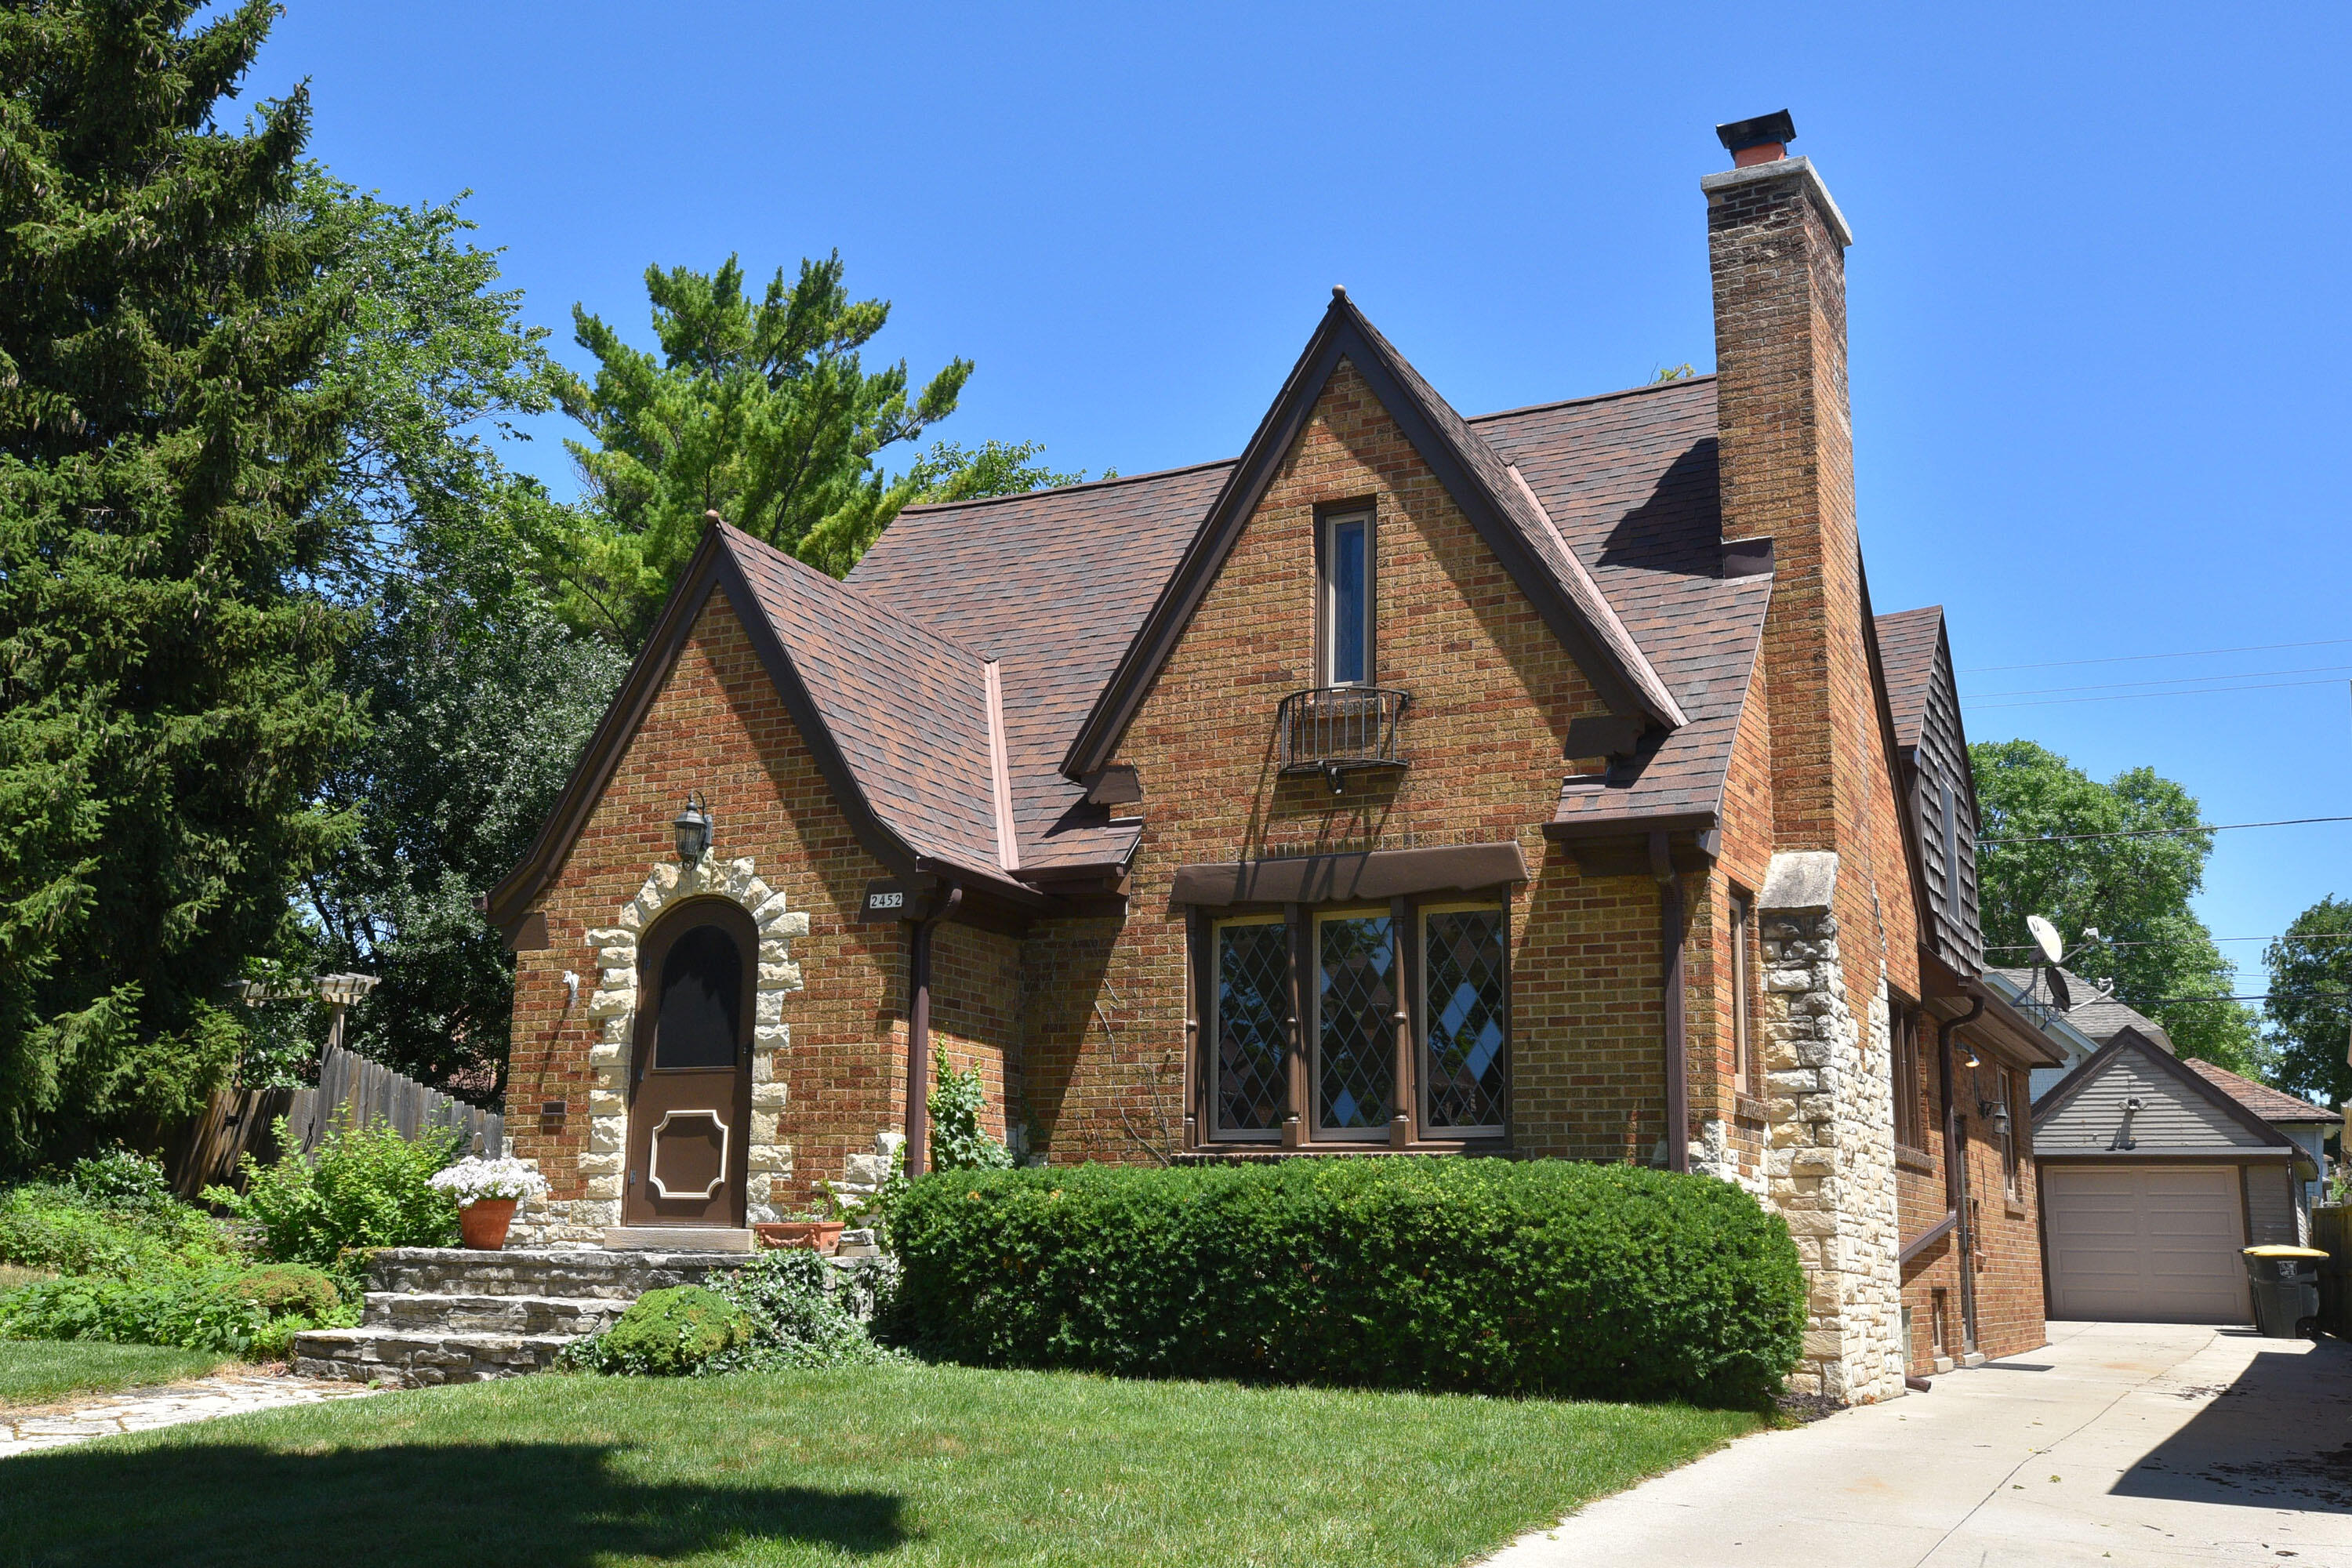 2452 62nd St, Wauwatosa, Wisconsin 53213, 4 Bedrooms Bedrooms, 10 Rooms Rooms,2 BathroomsBathrooms,Single-Family,For Sale,62nd St,1768292